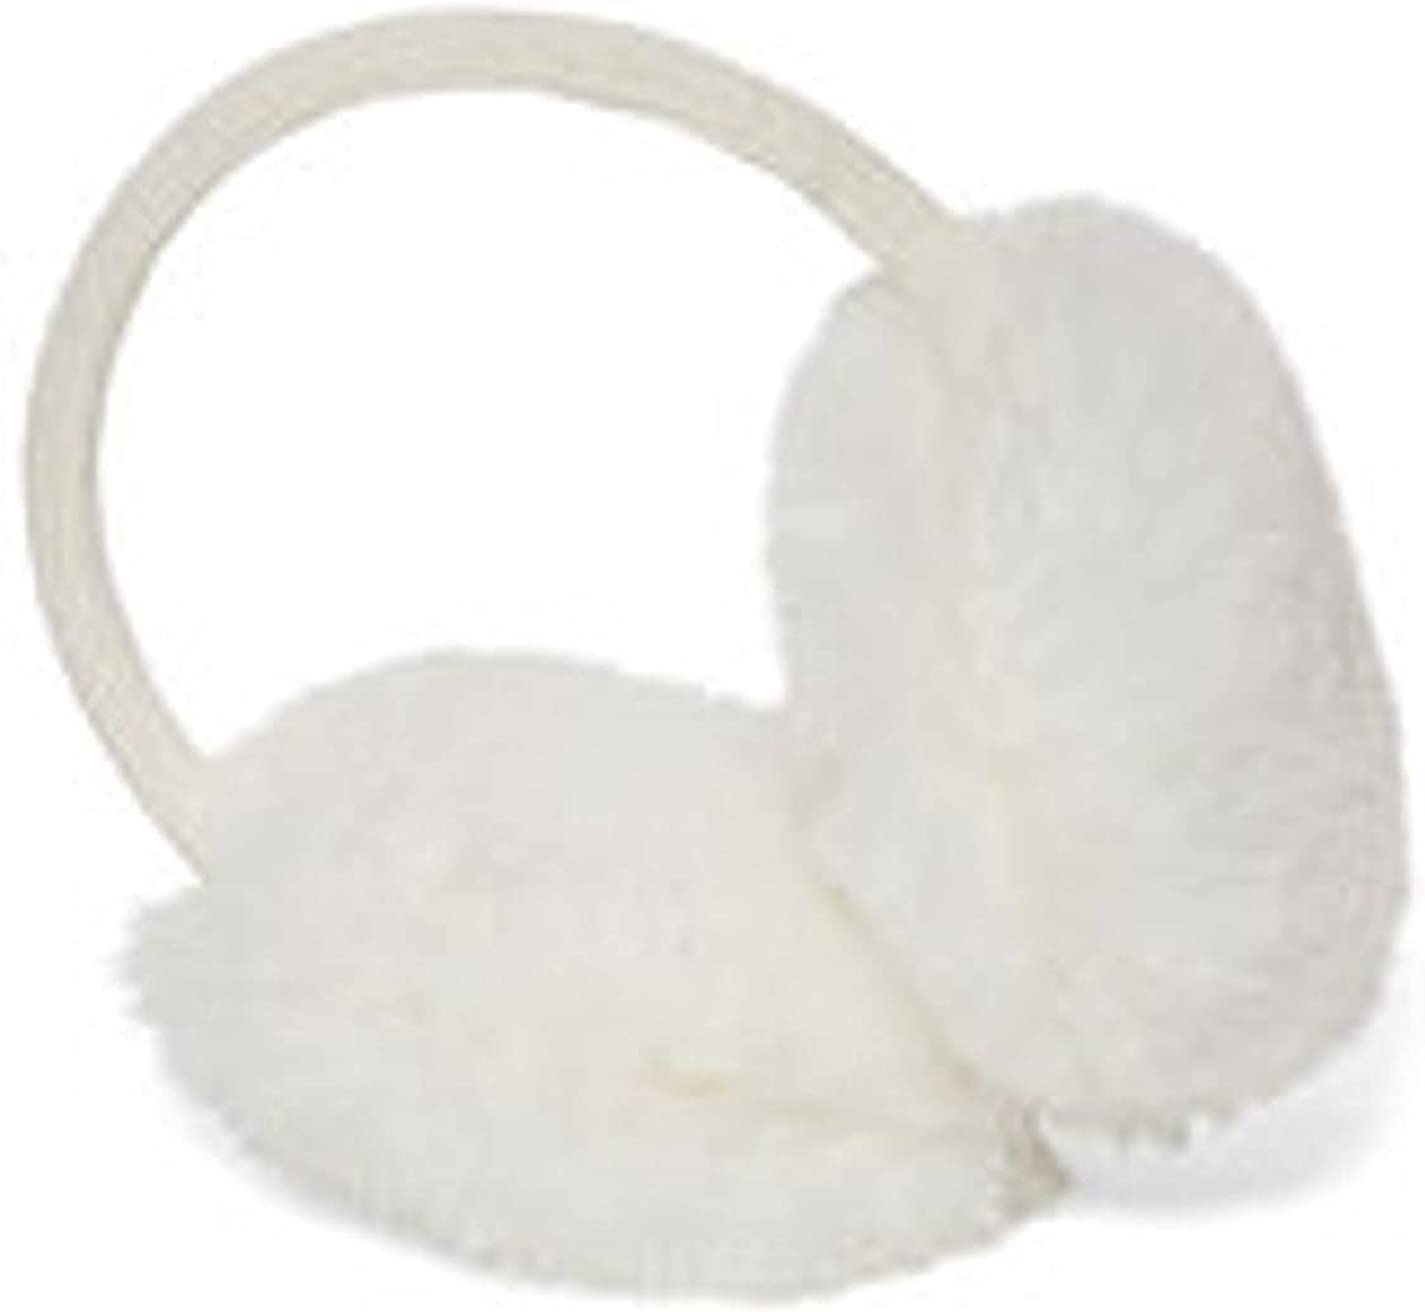 Super Soft One Size Fit Unisex Ear Muffs , Available in Many Colors